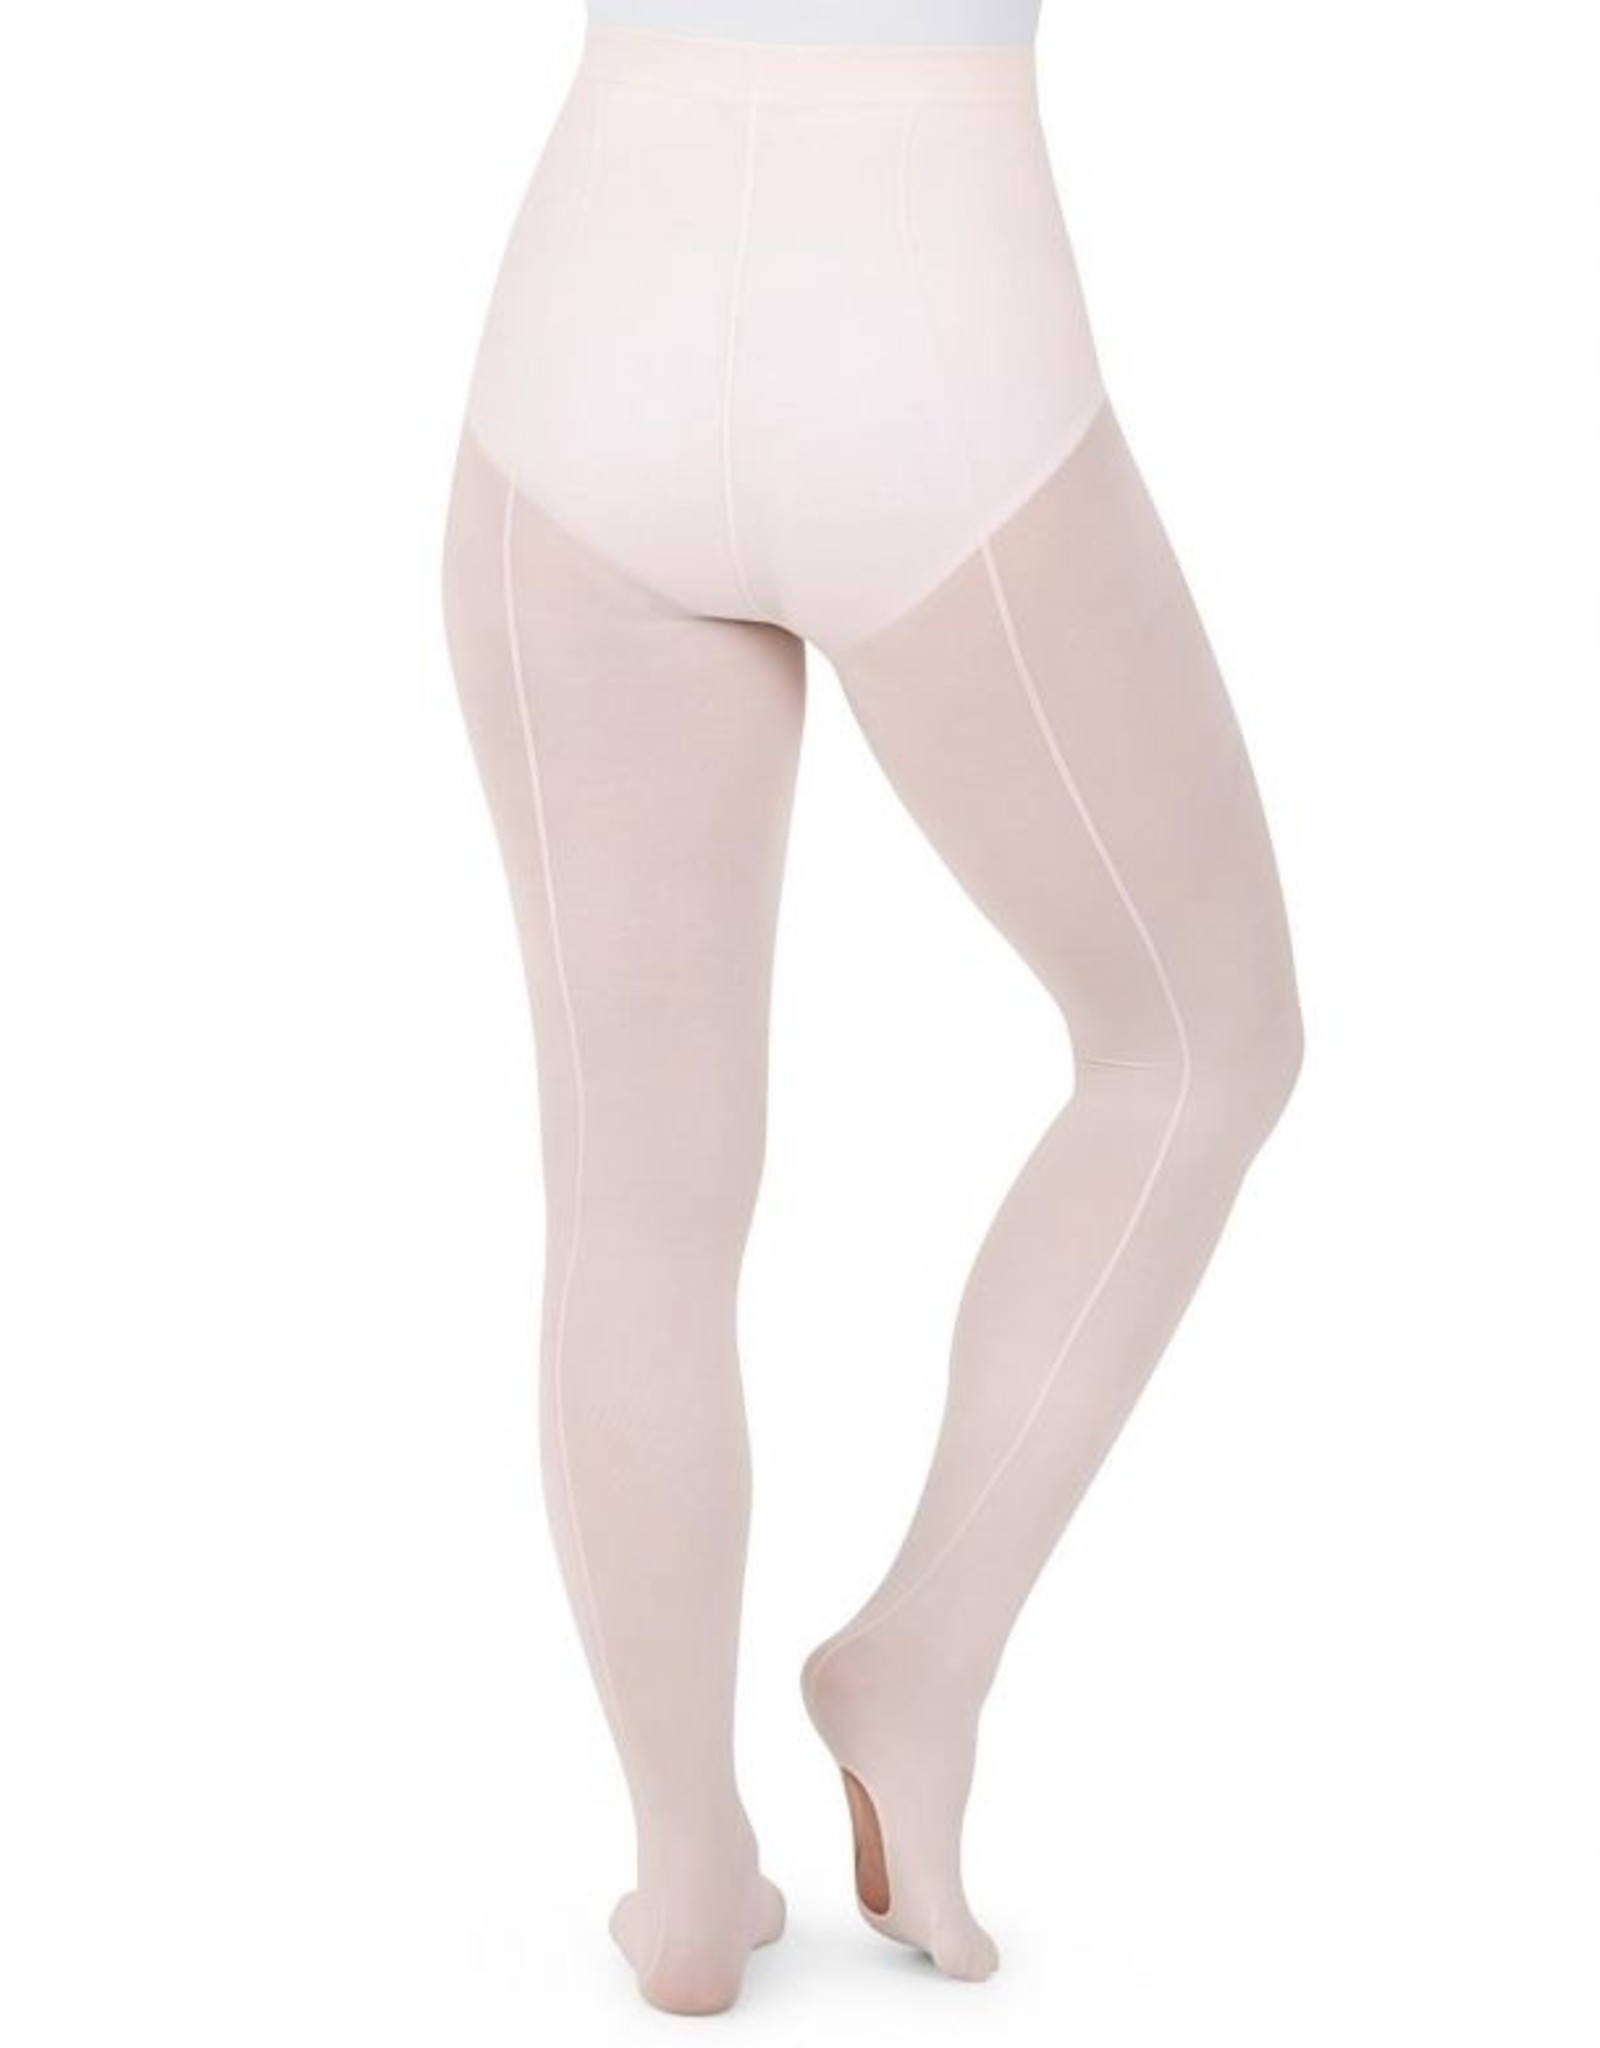 Capezio Capezio Childrens Ultra Soft Transition Tights w Back Seam - 1918C